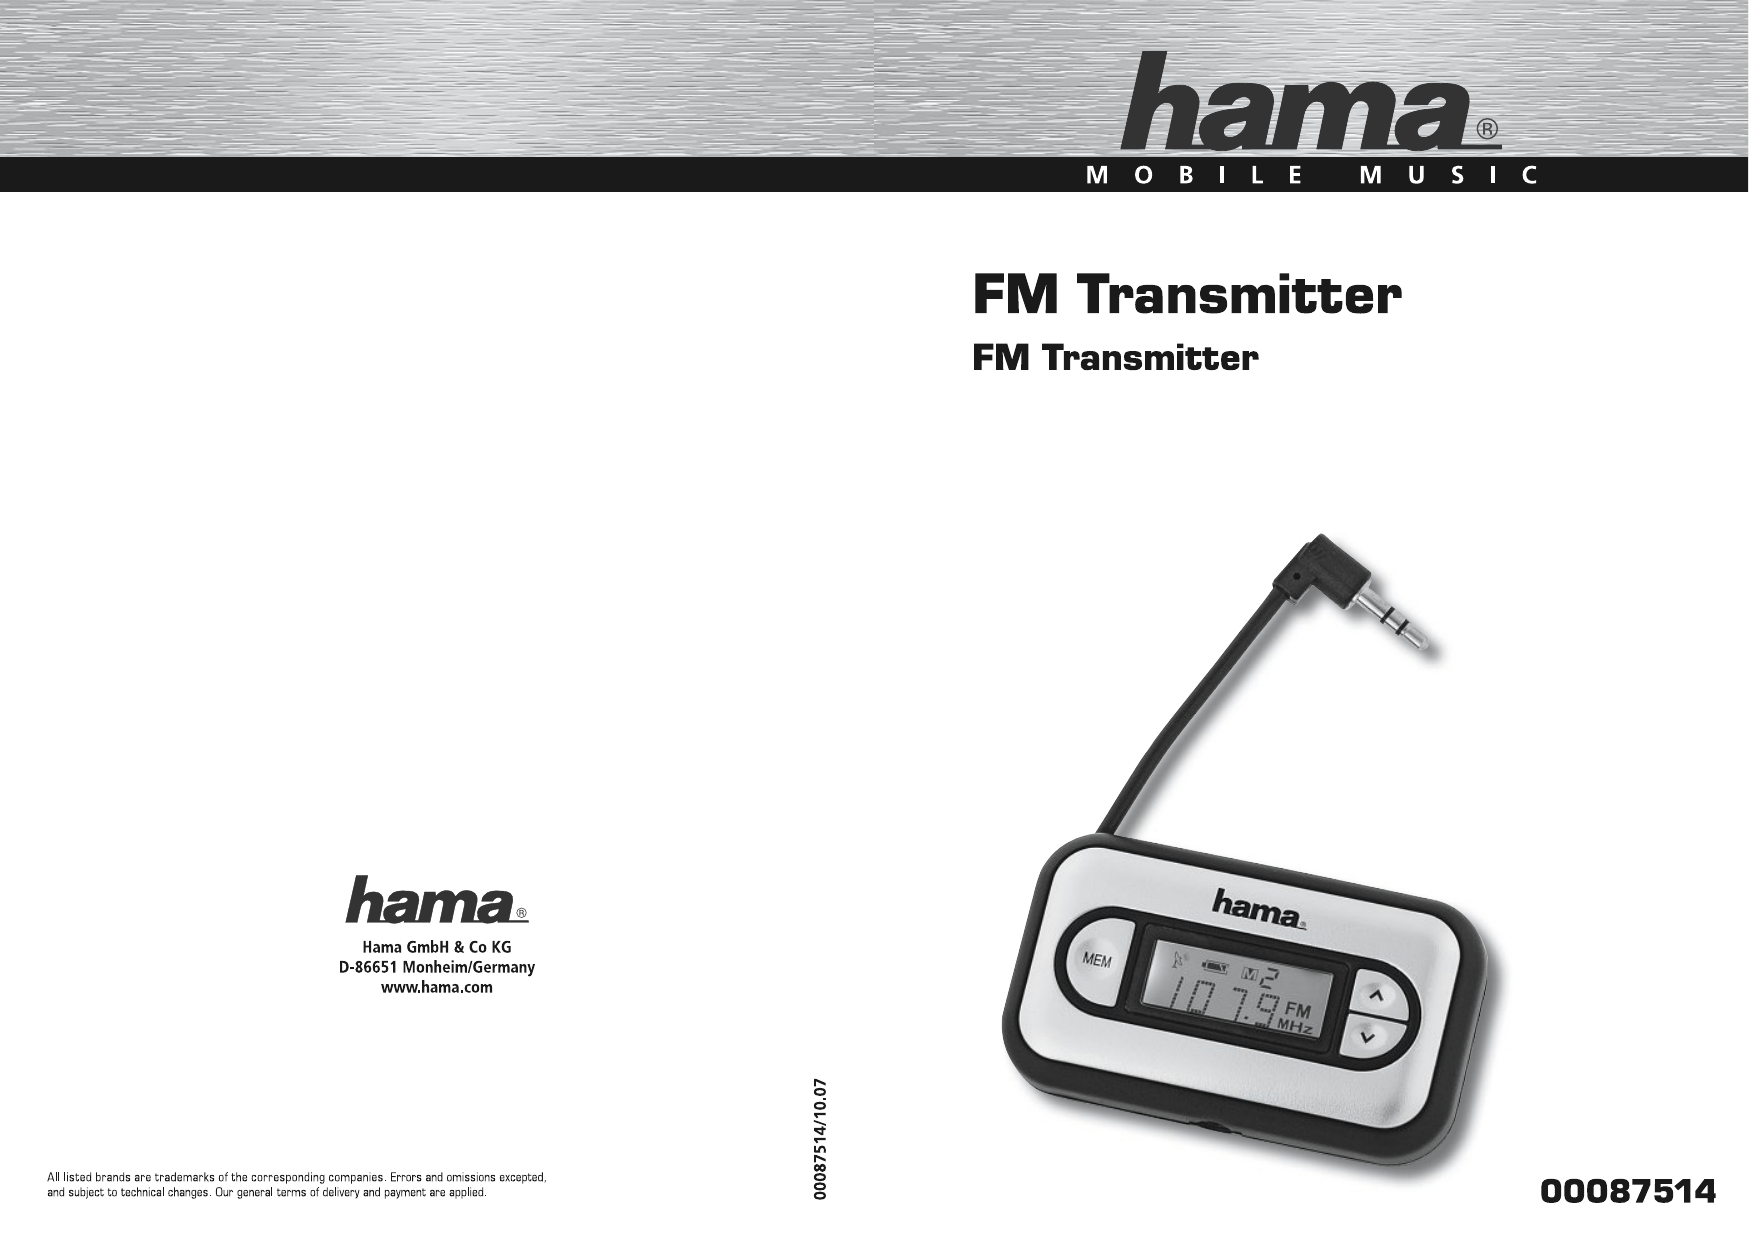 Hama 00087514 FM Transmitter for Apple iPhone/ iPhone 3G